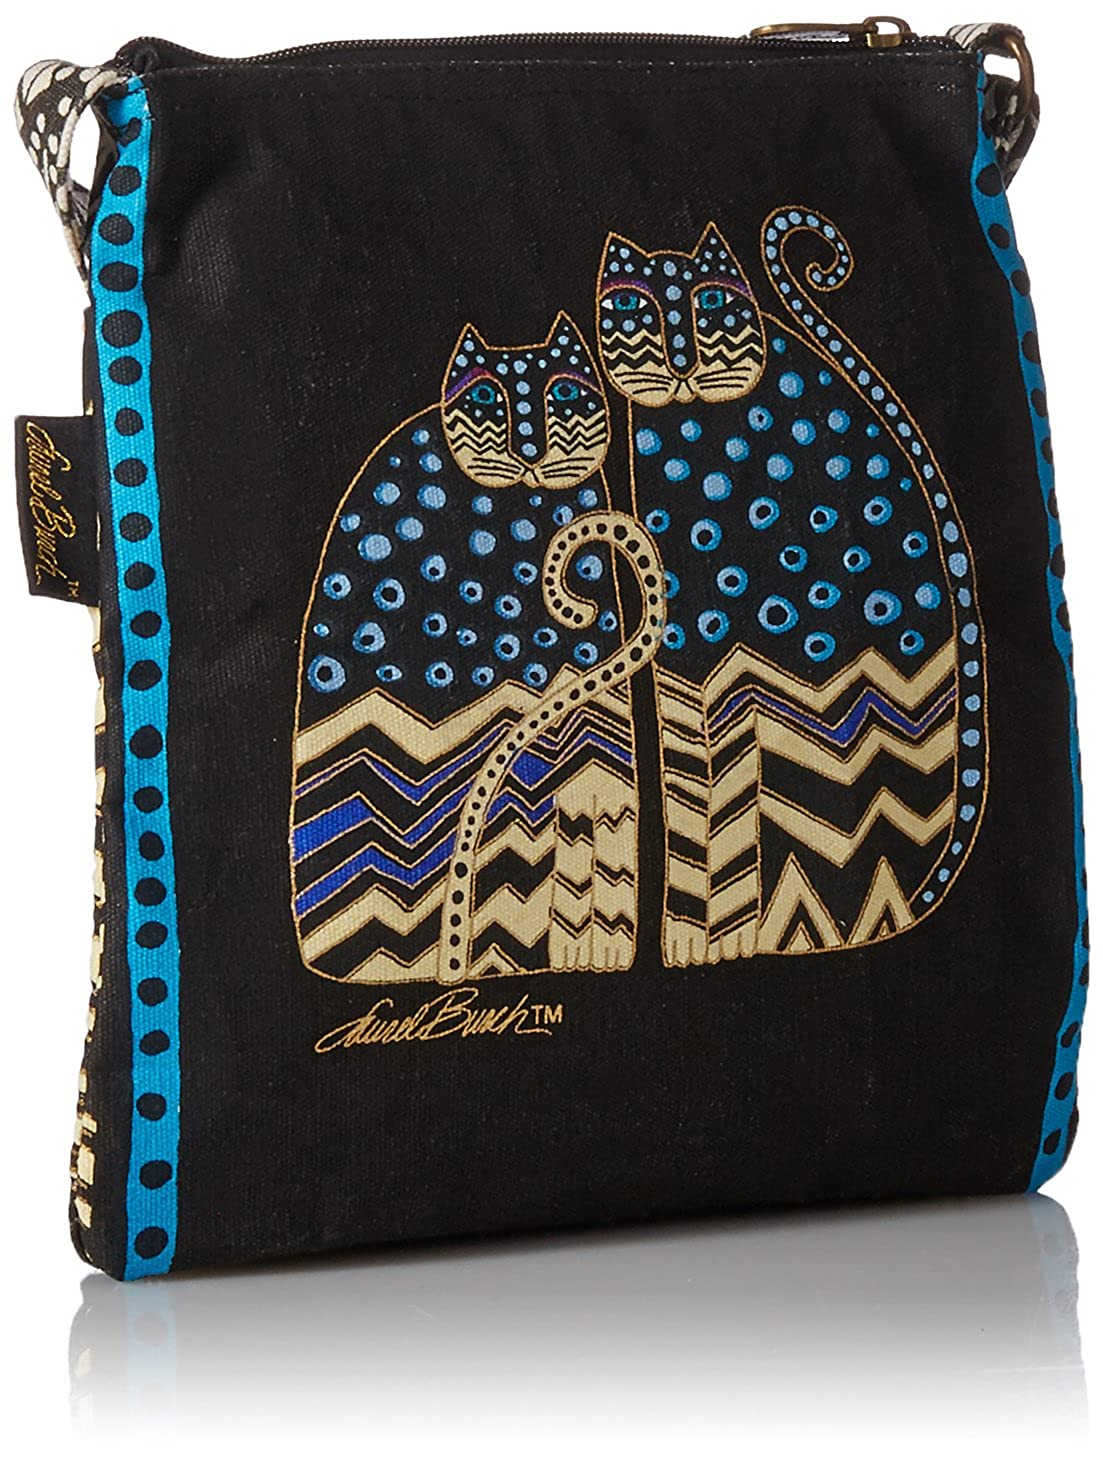 Laurel Burch LB4315 Crossbody Tote with Zipper Top Spotted Cats